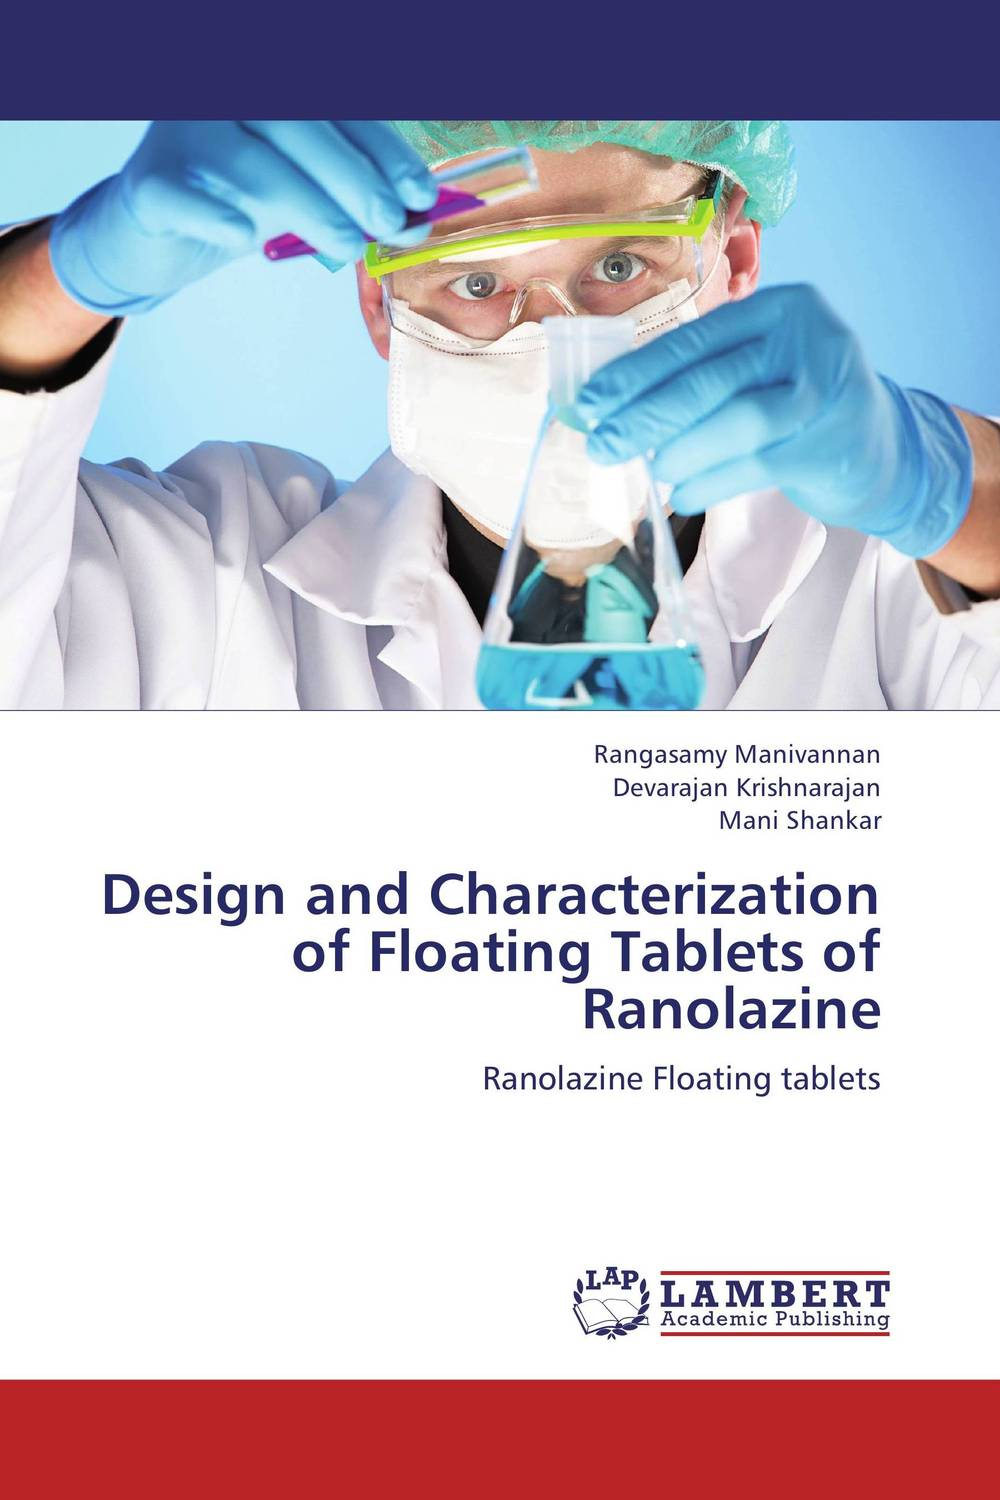 Design and Characterization of Floating Tablets of Ranolazine purnima sareen sundeep kumar and rakesh singh molecular and pathological characterization of slow rusting in wheat